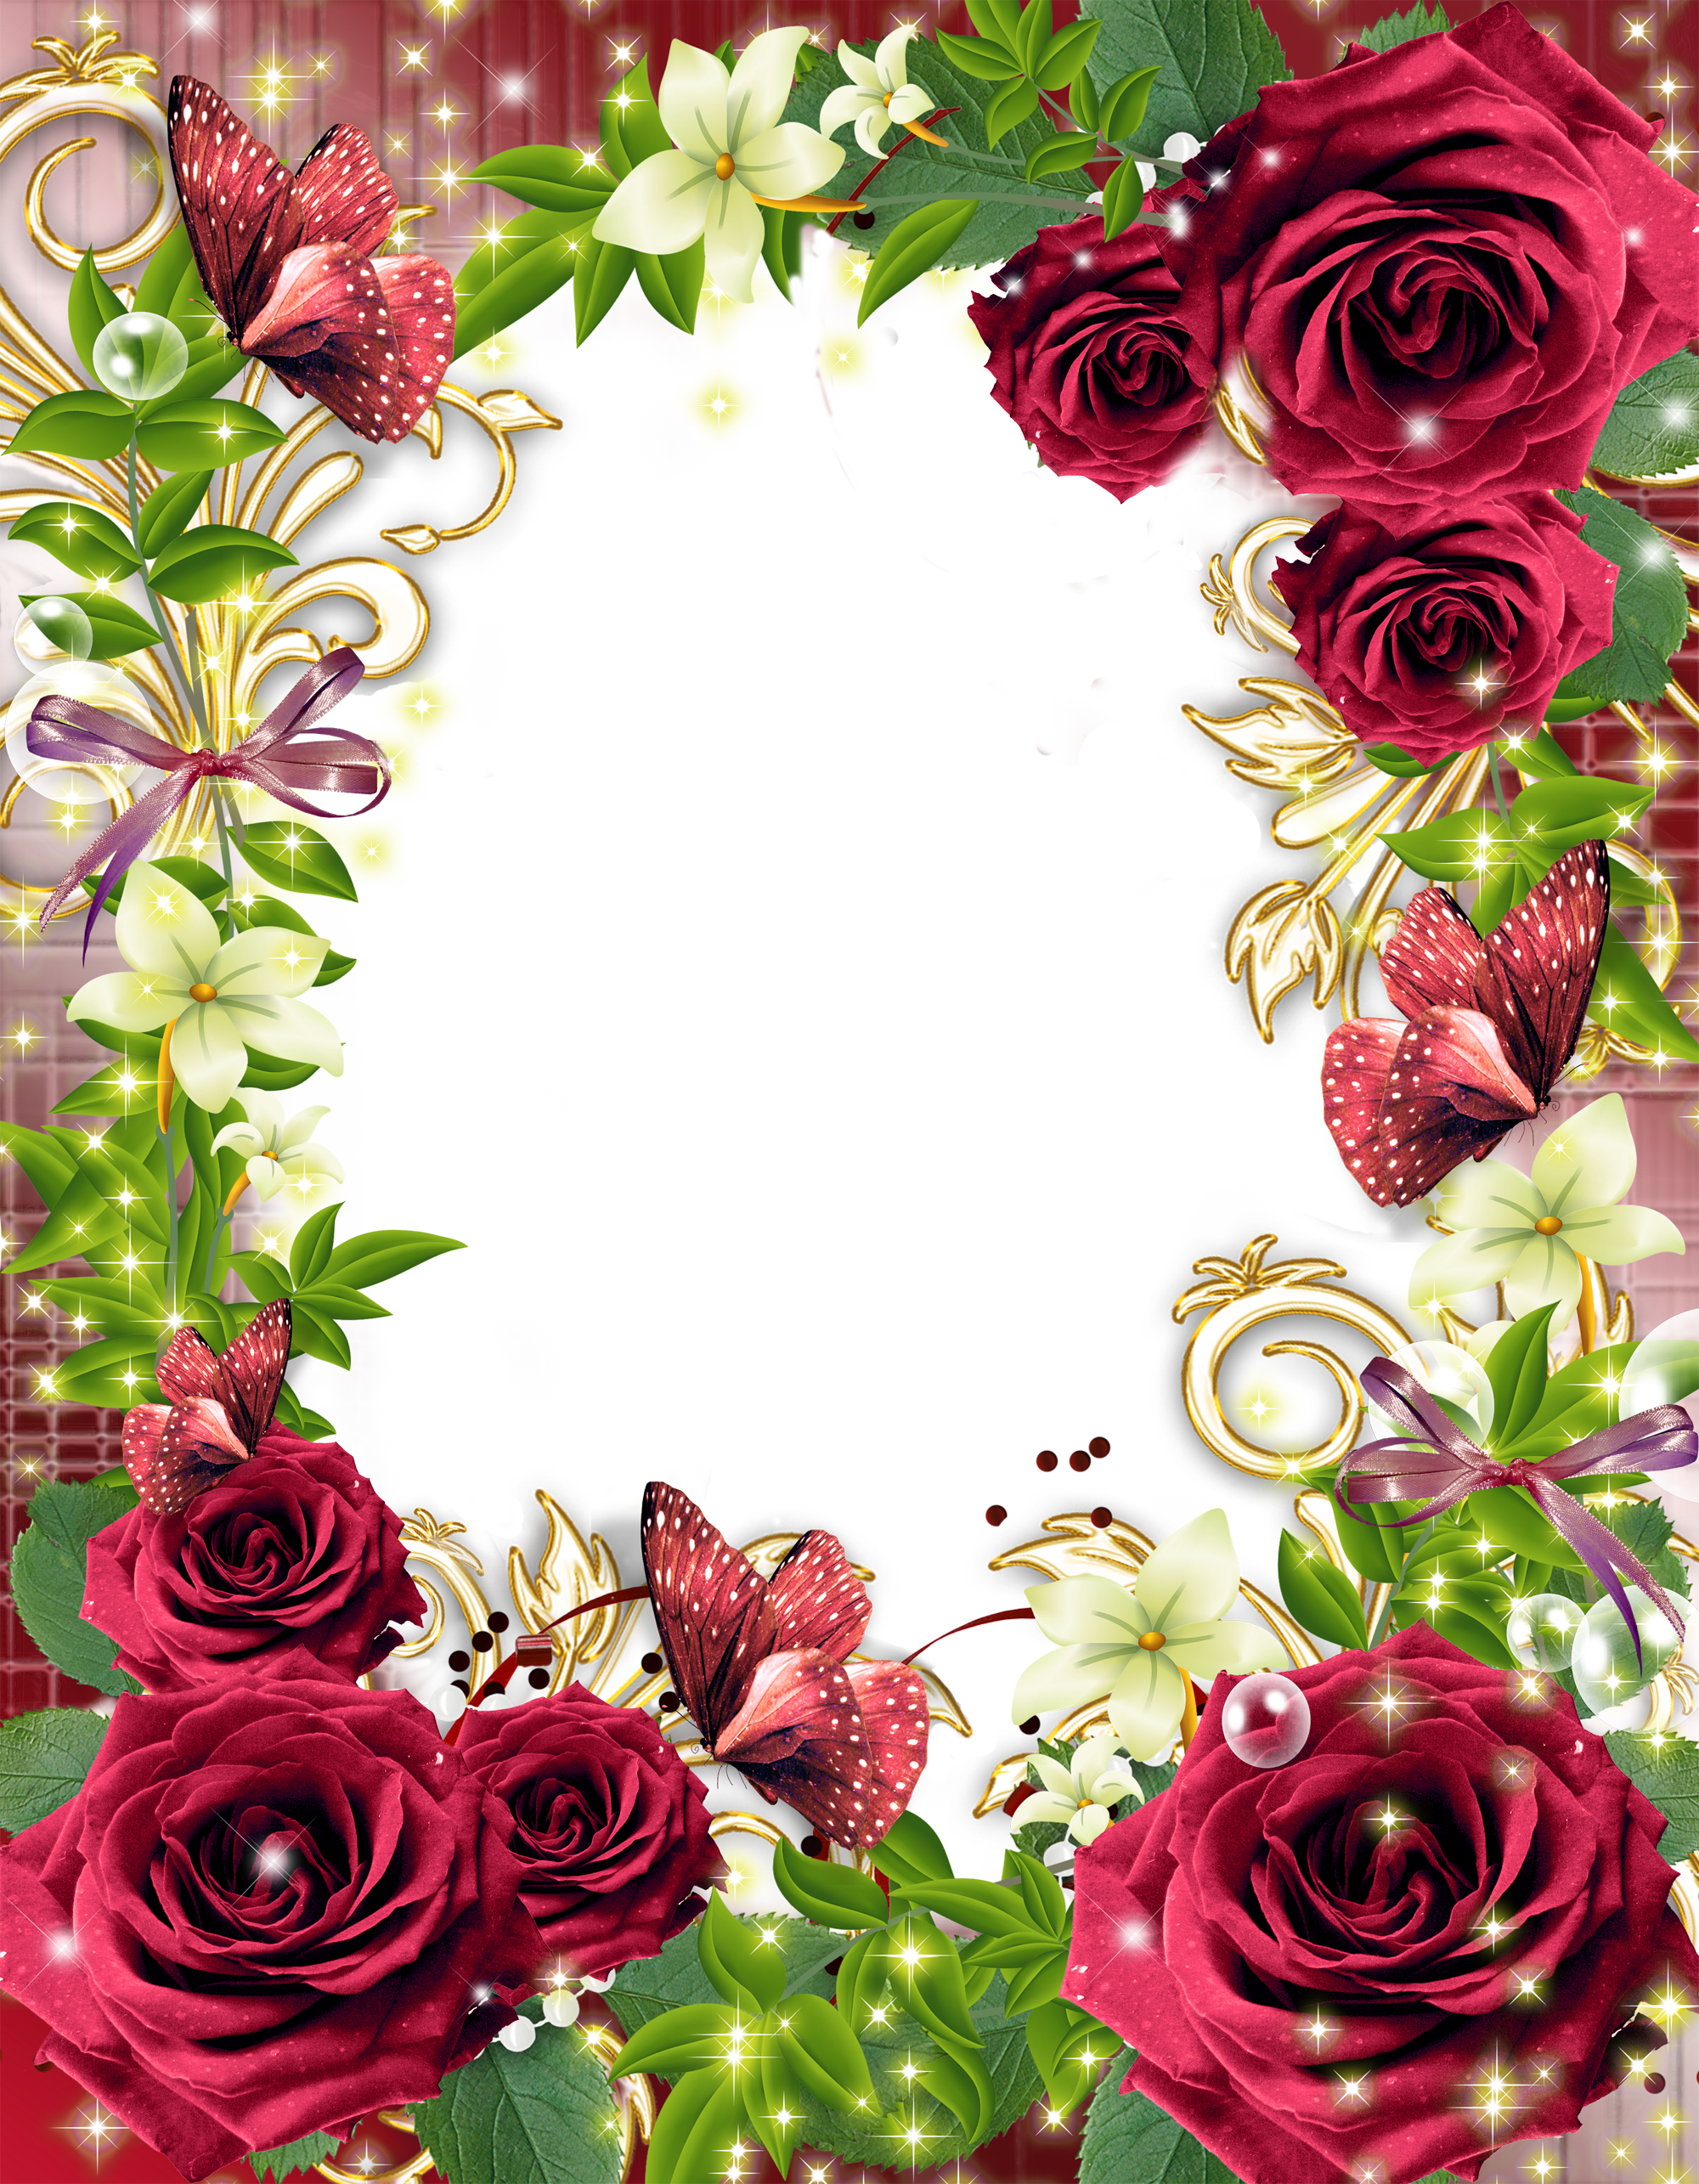 Transparent Png Photo Frame With Red Roses Gallery Yopriceville High Quality Images And Transparent Png Free Clipart Flower Frame Red Roses Photo Frame